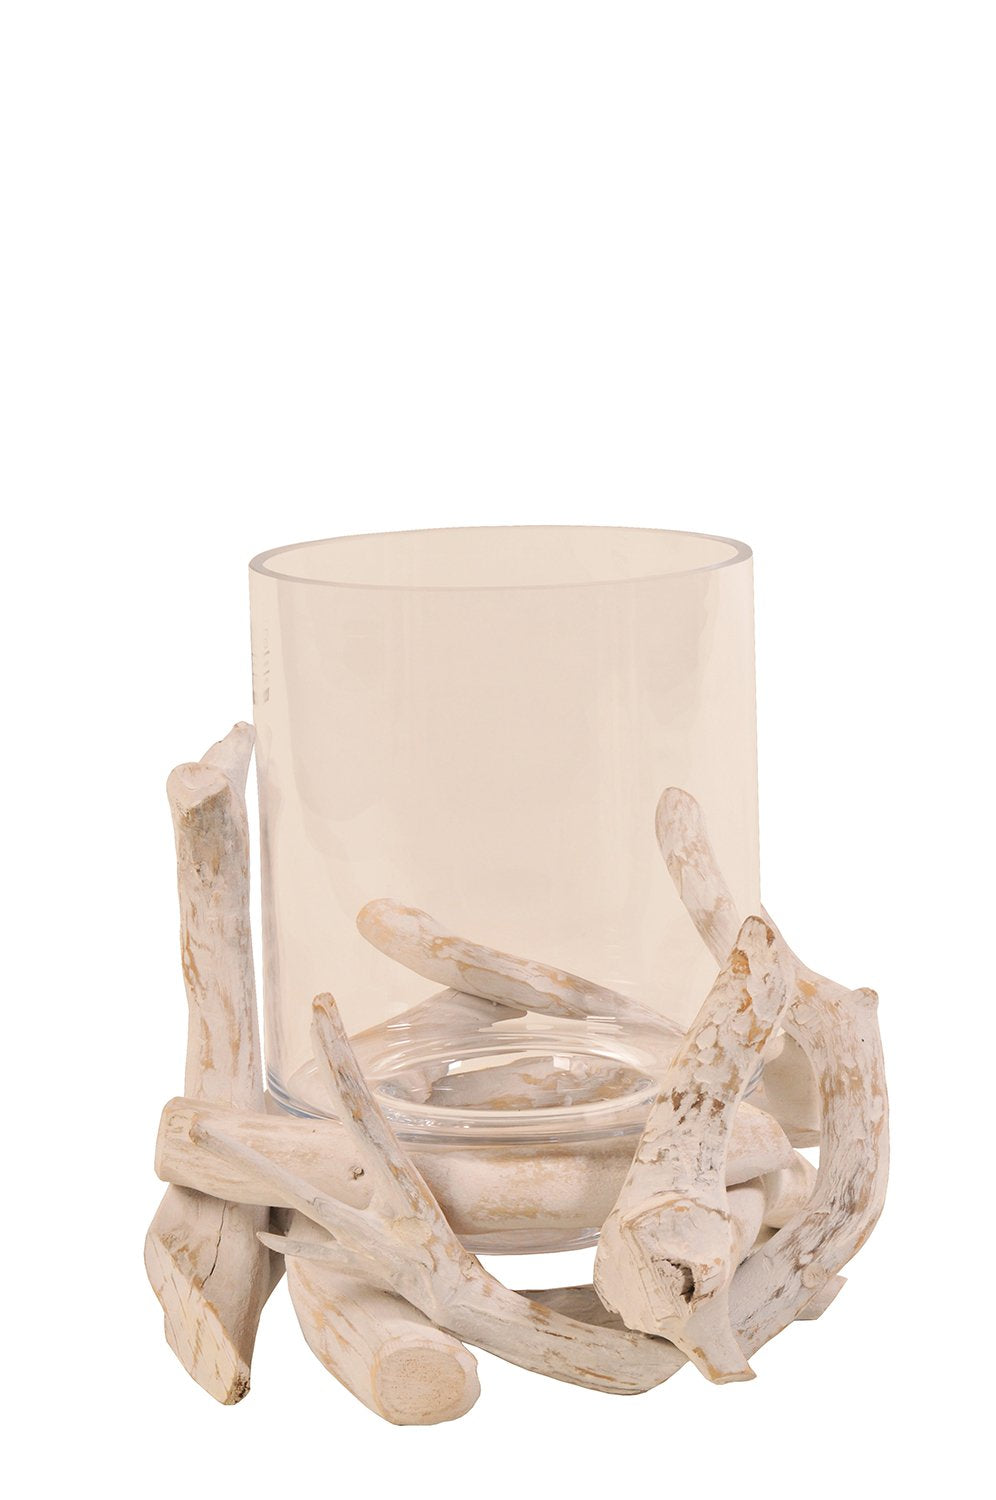 Vase | Laguna White | Hebe Medium